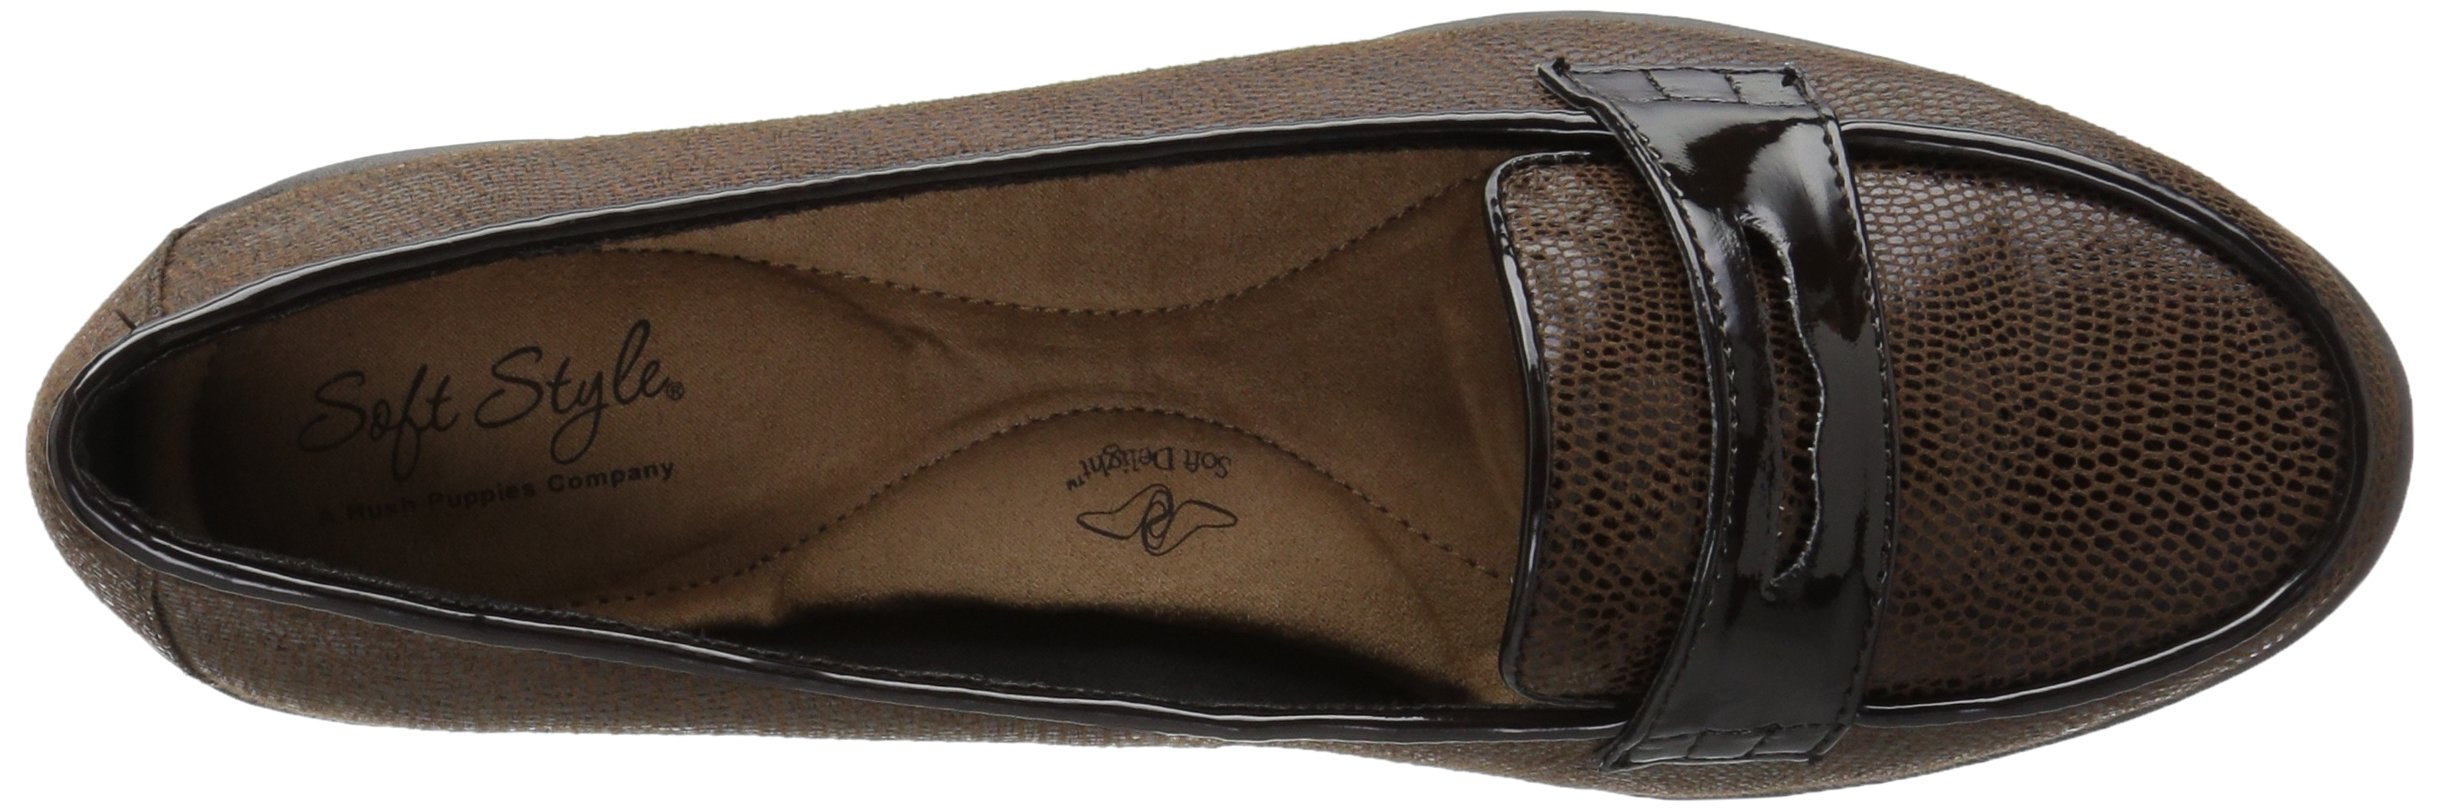 Soft Style by Hush Puppies Women's Daly Penny Loafer, Dark Brown Lizard/Patent, 8.5 W US by Soft Style (Image #8)